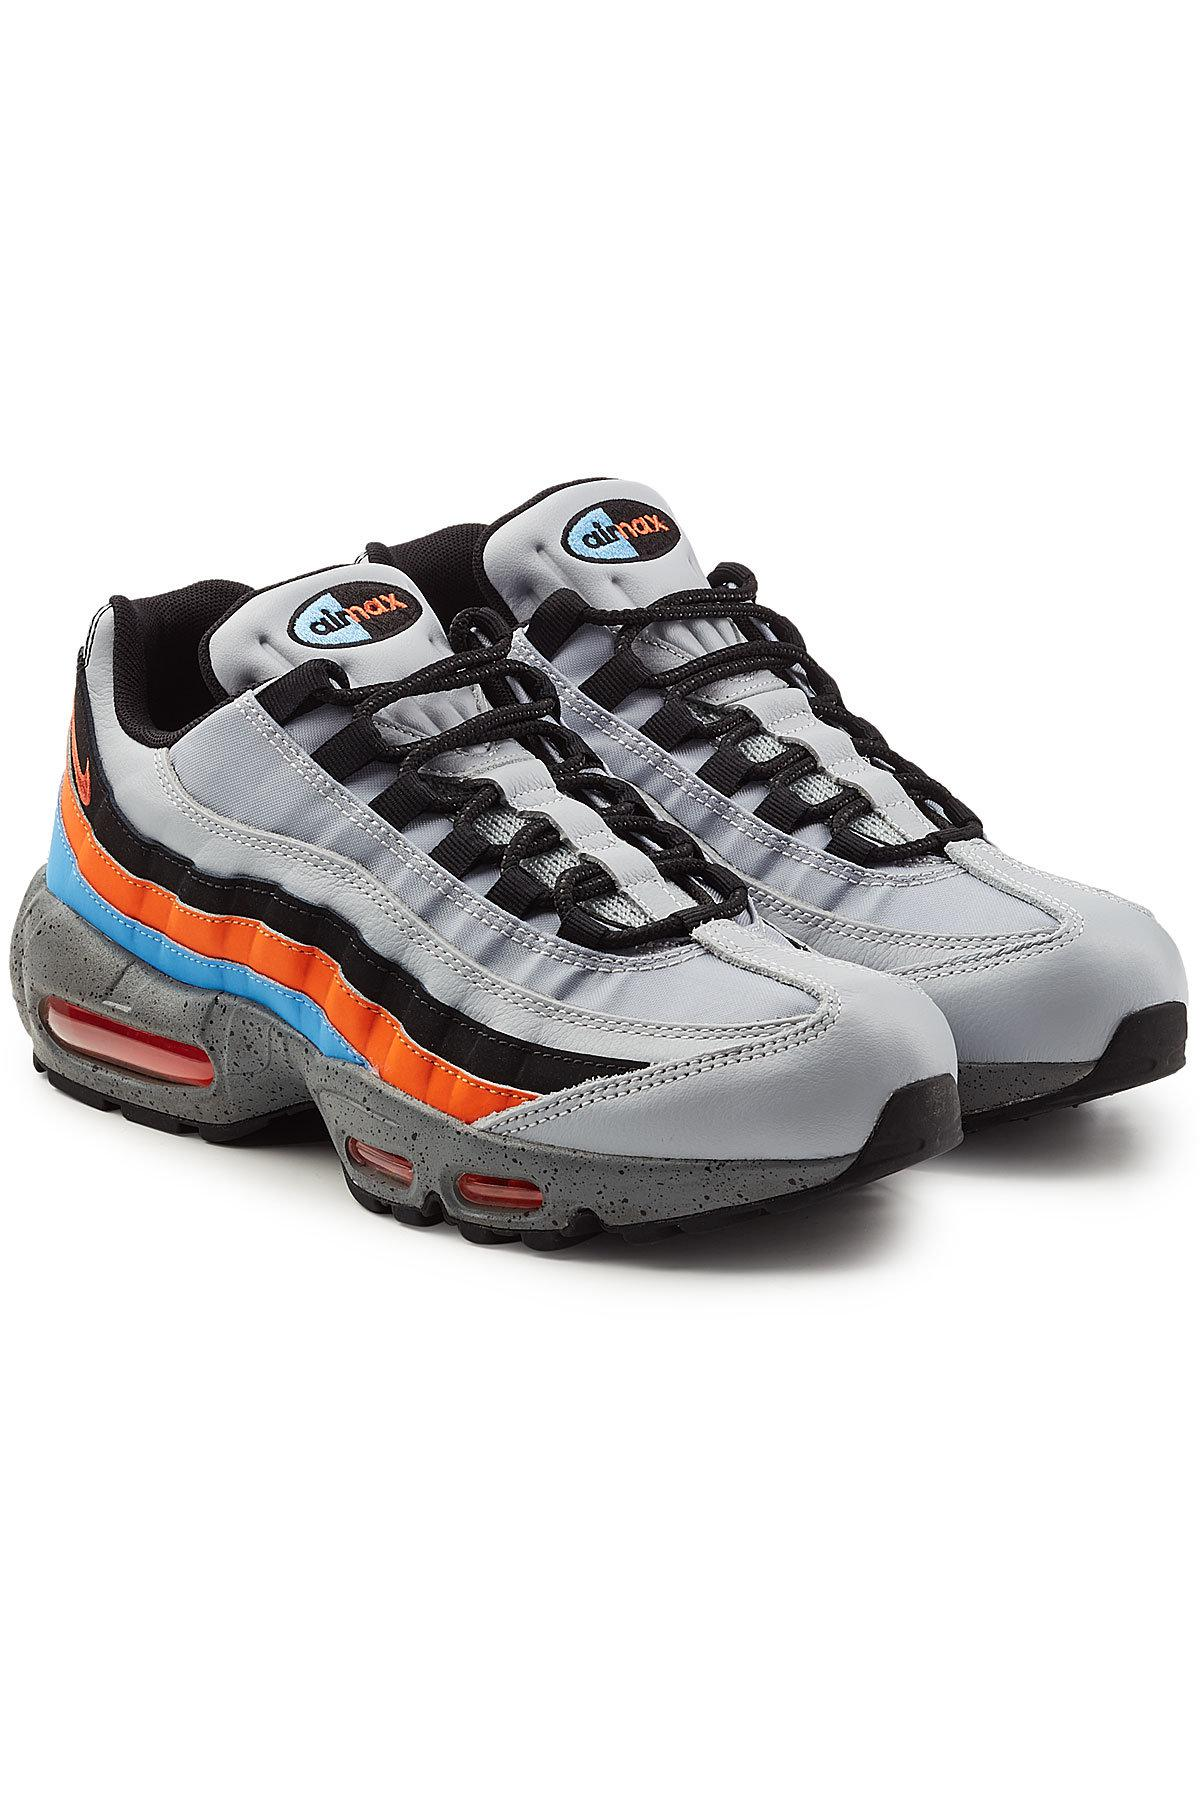 free shipping 1435d e377b Lyst - Nike Air Max 95 Premium Sneakers With Leather for Men